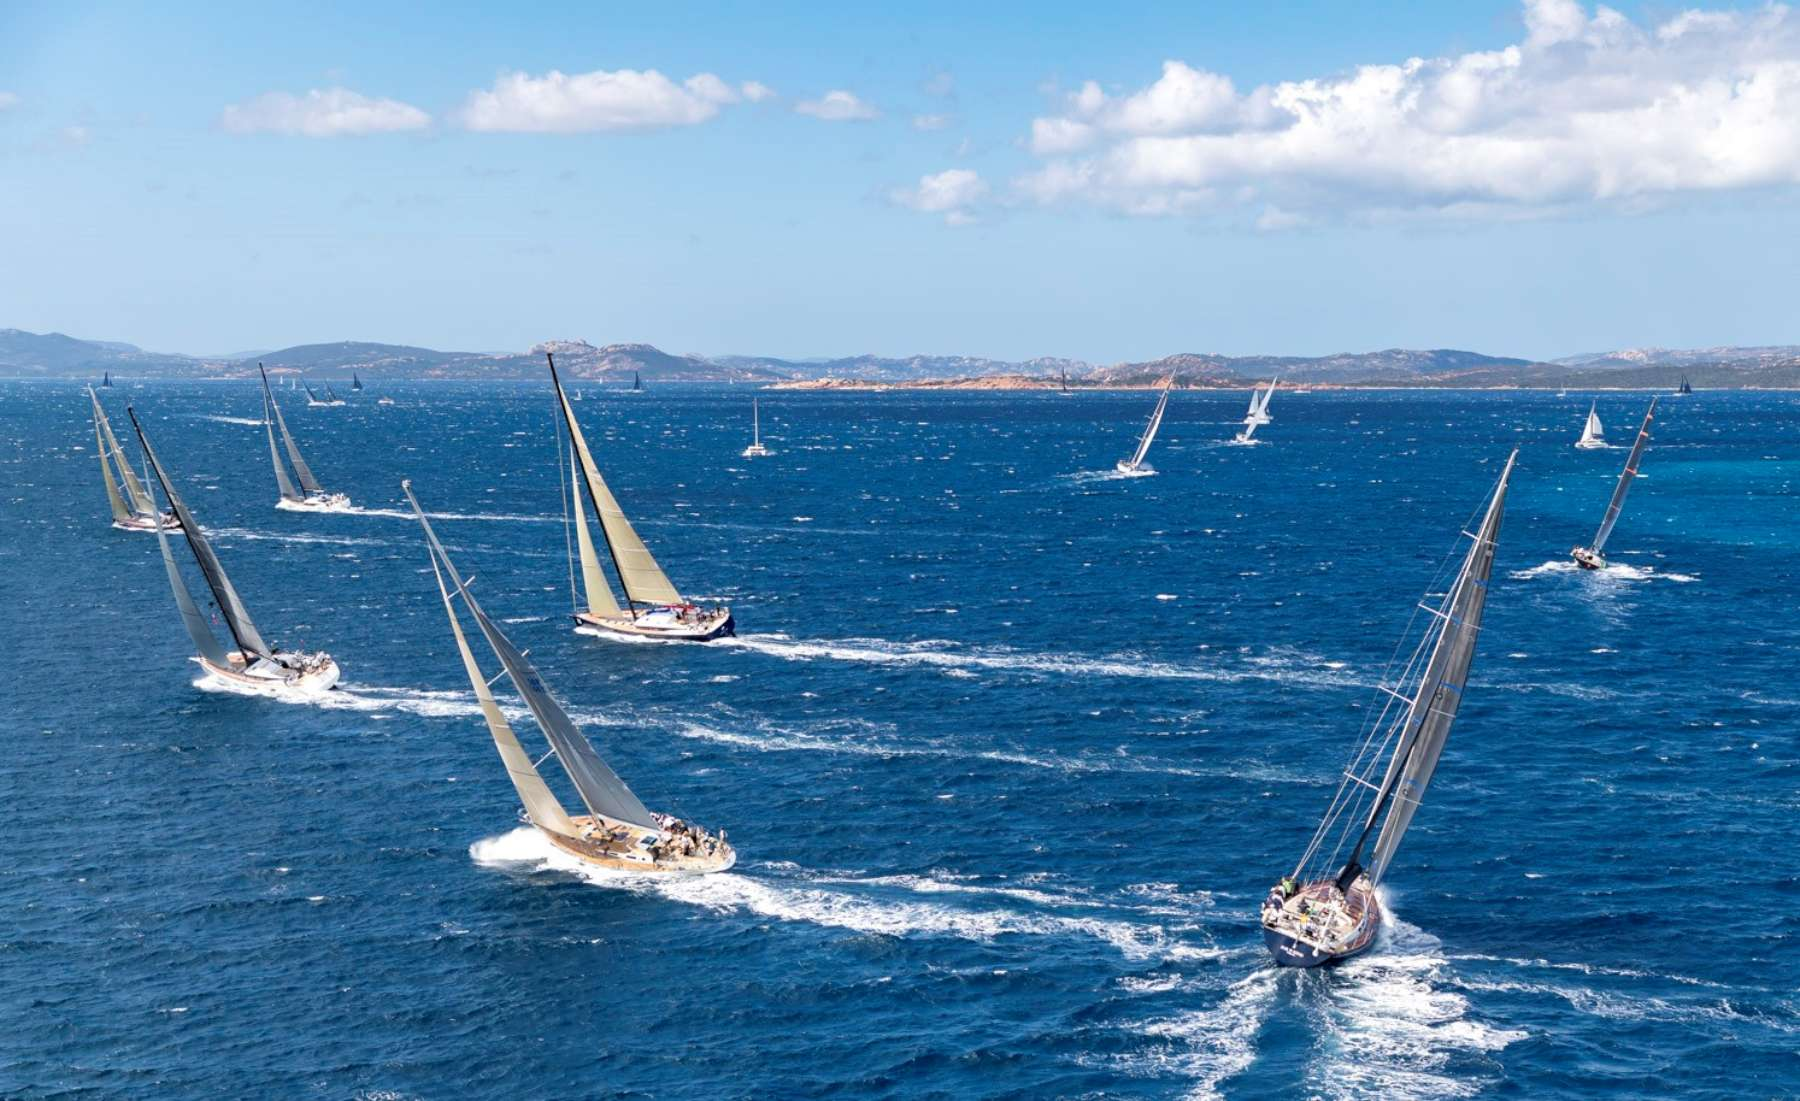 New dates for 2022 ORC/IRC World Championship   - NEWS - Yacht Club Costa Smeralda